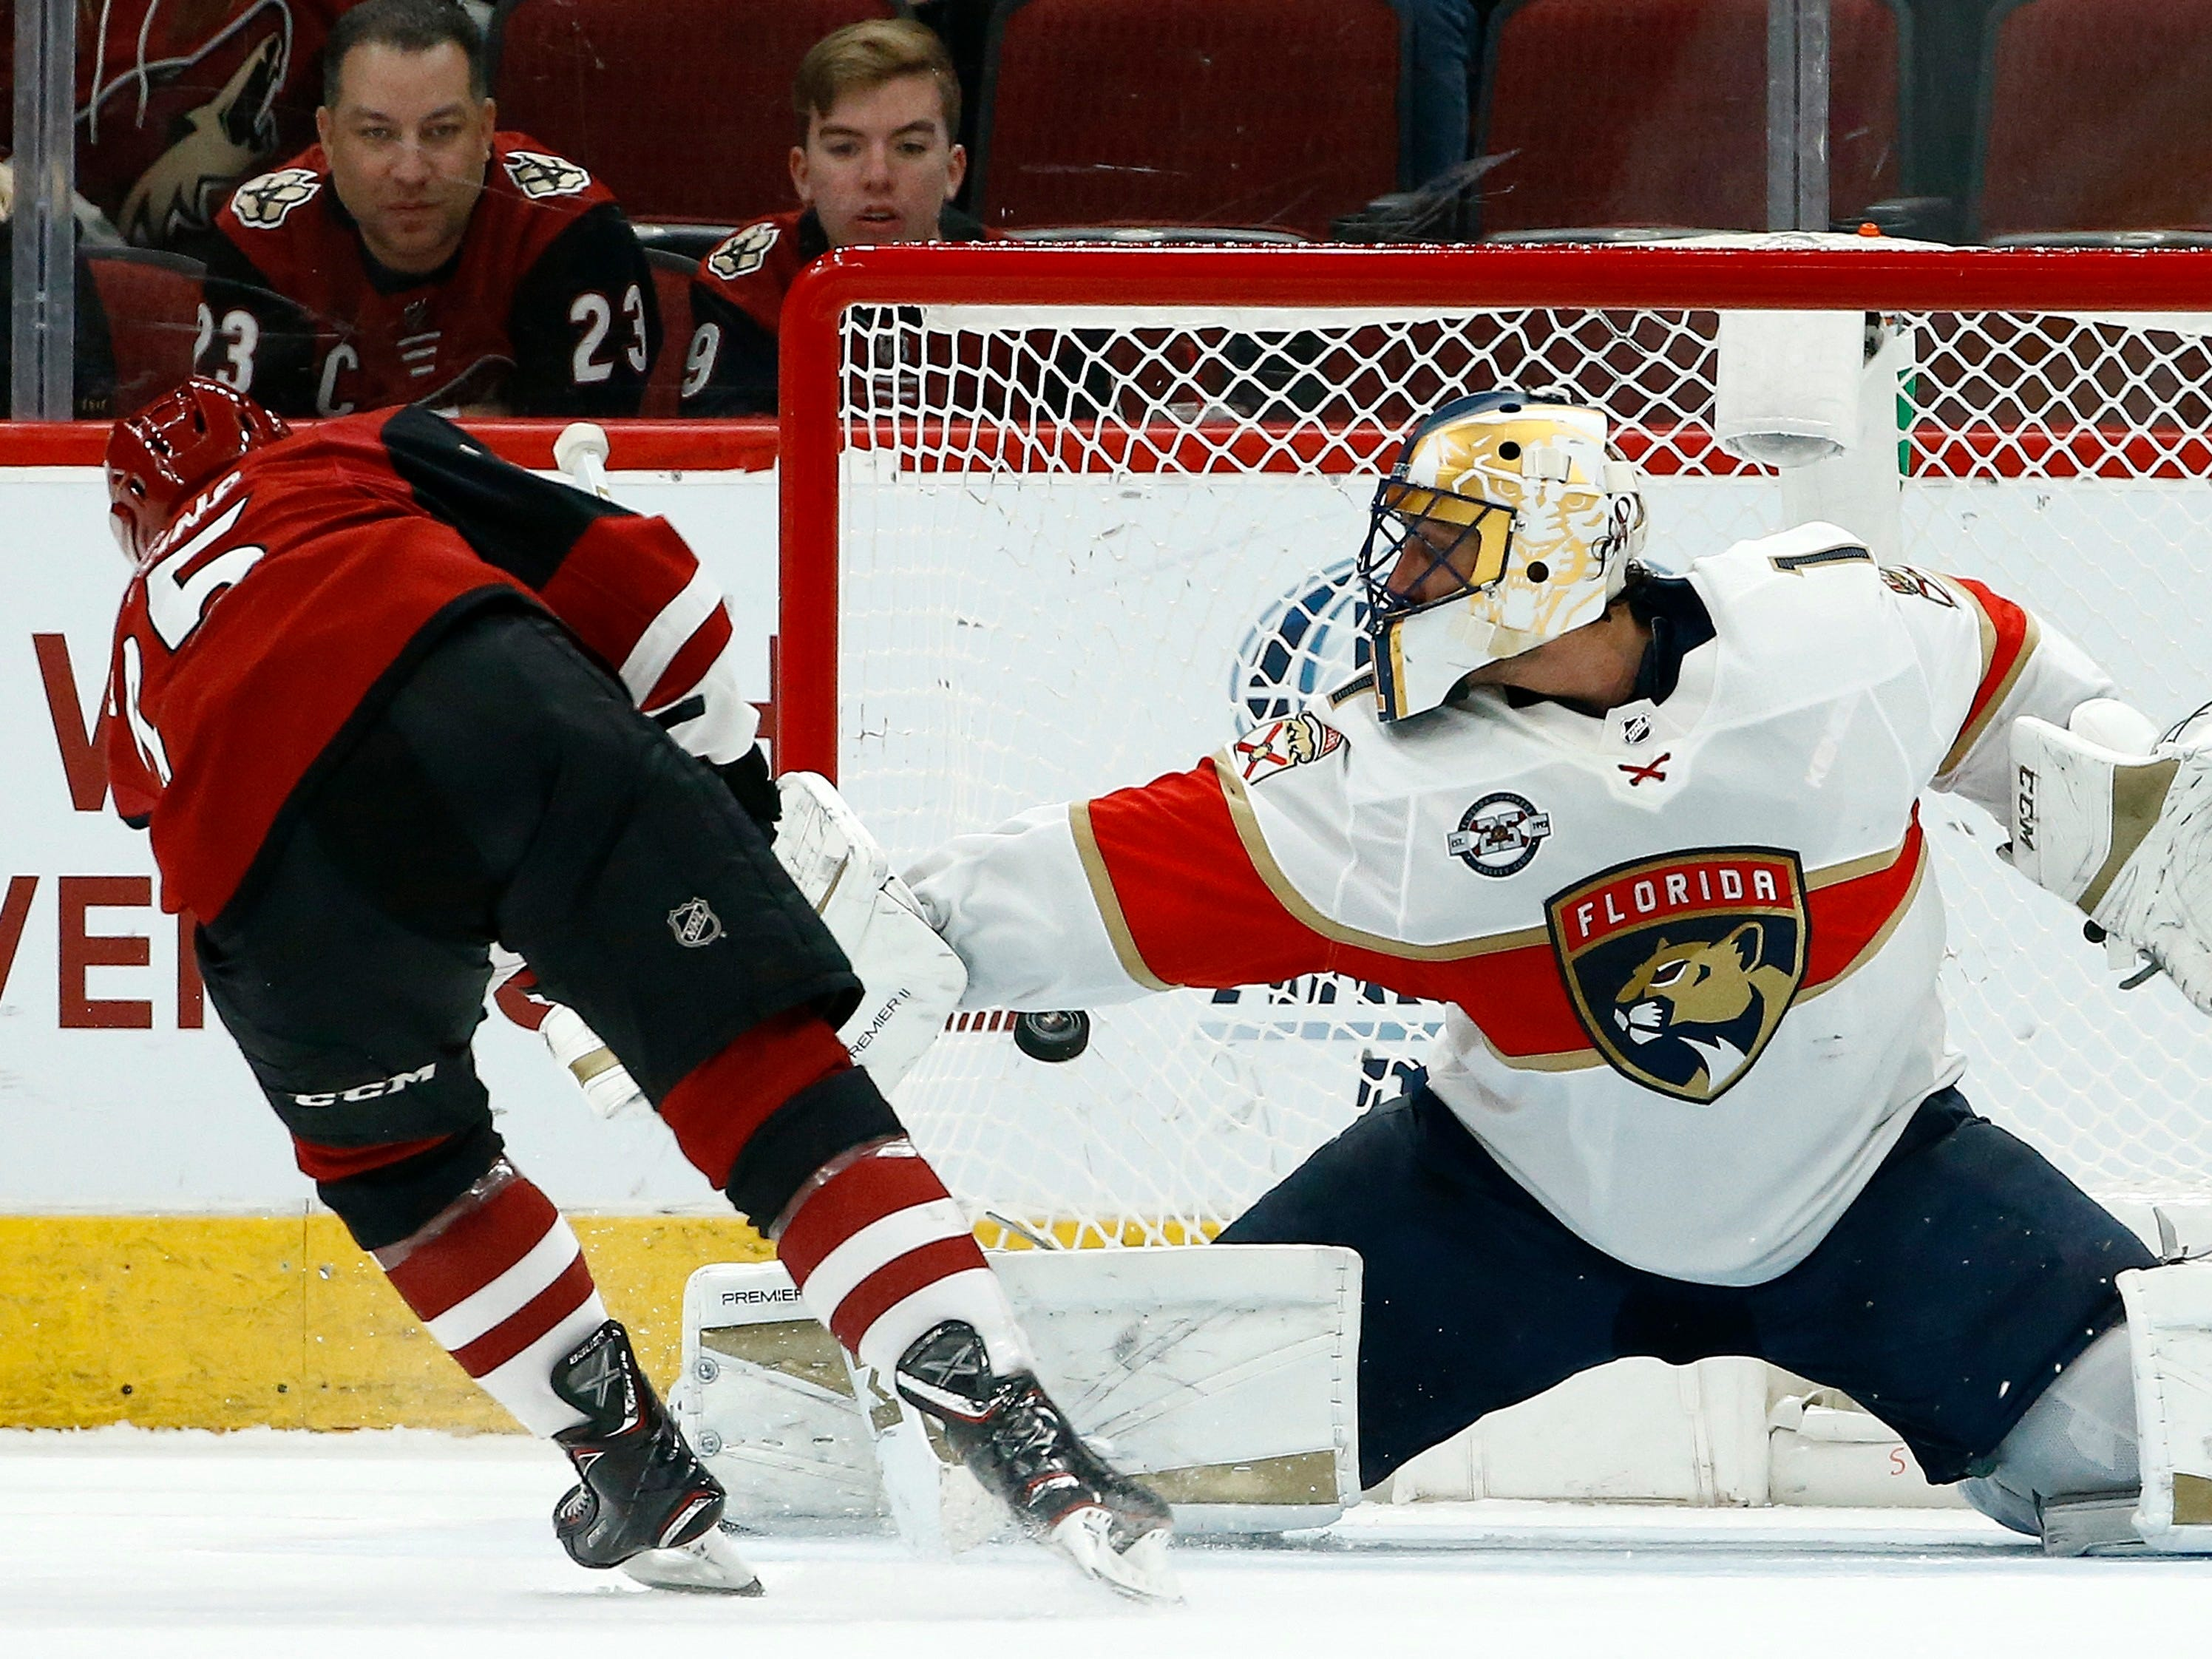 Arizona Coyotes center Nick Cousins, left, scores a goal against Florida Panthers goaltender Roberto Luongo during the shootout in an NHL hockey game Tuesday, Feb. 26, 2019, in Glendale, Ariz. The Coyotes won 4-3.